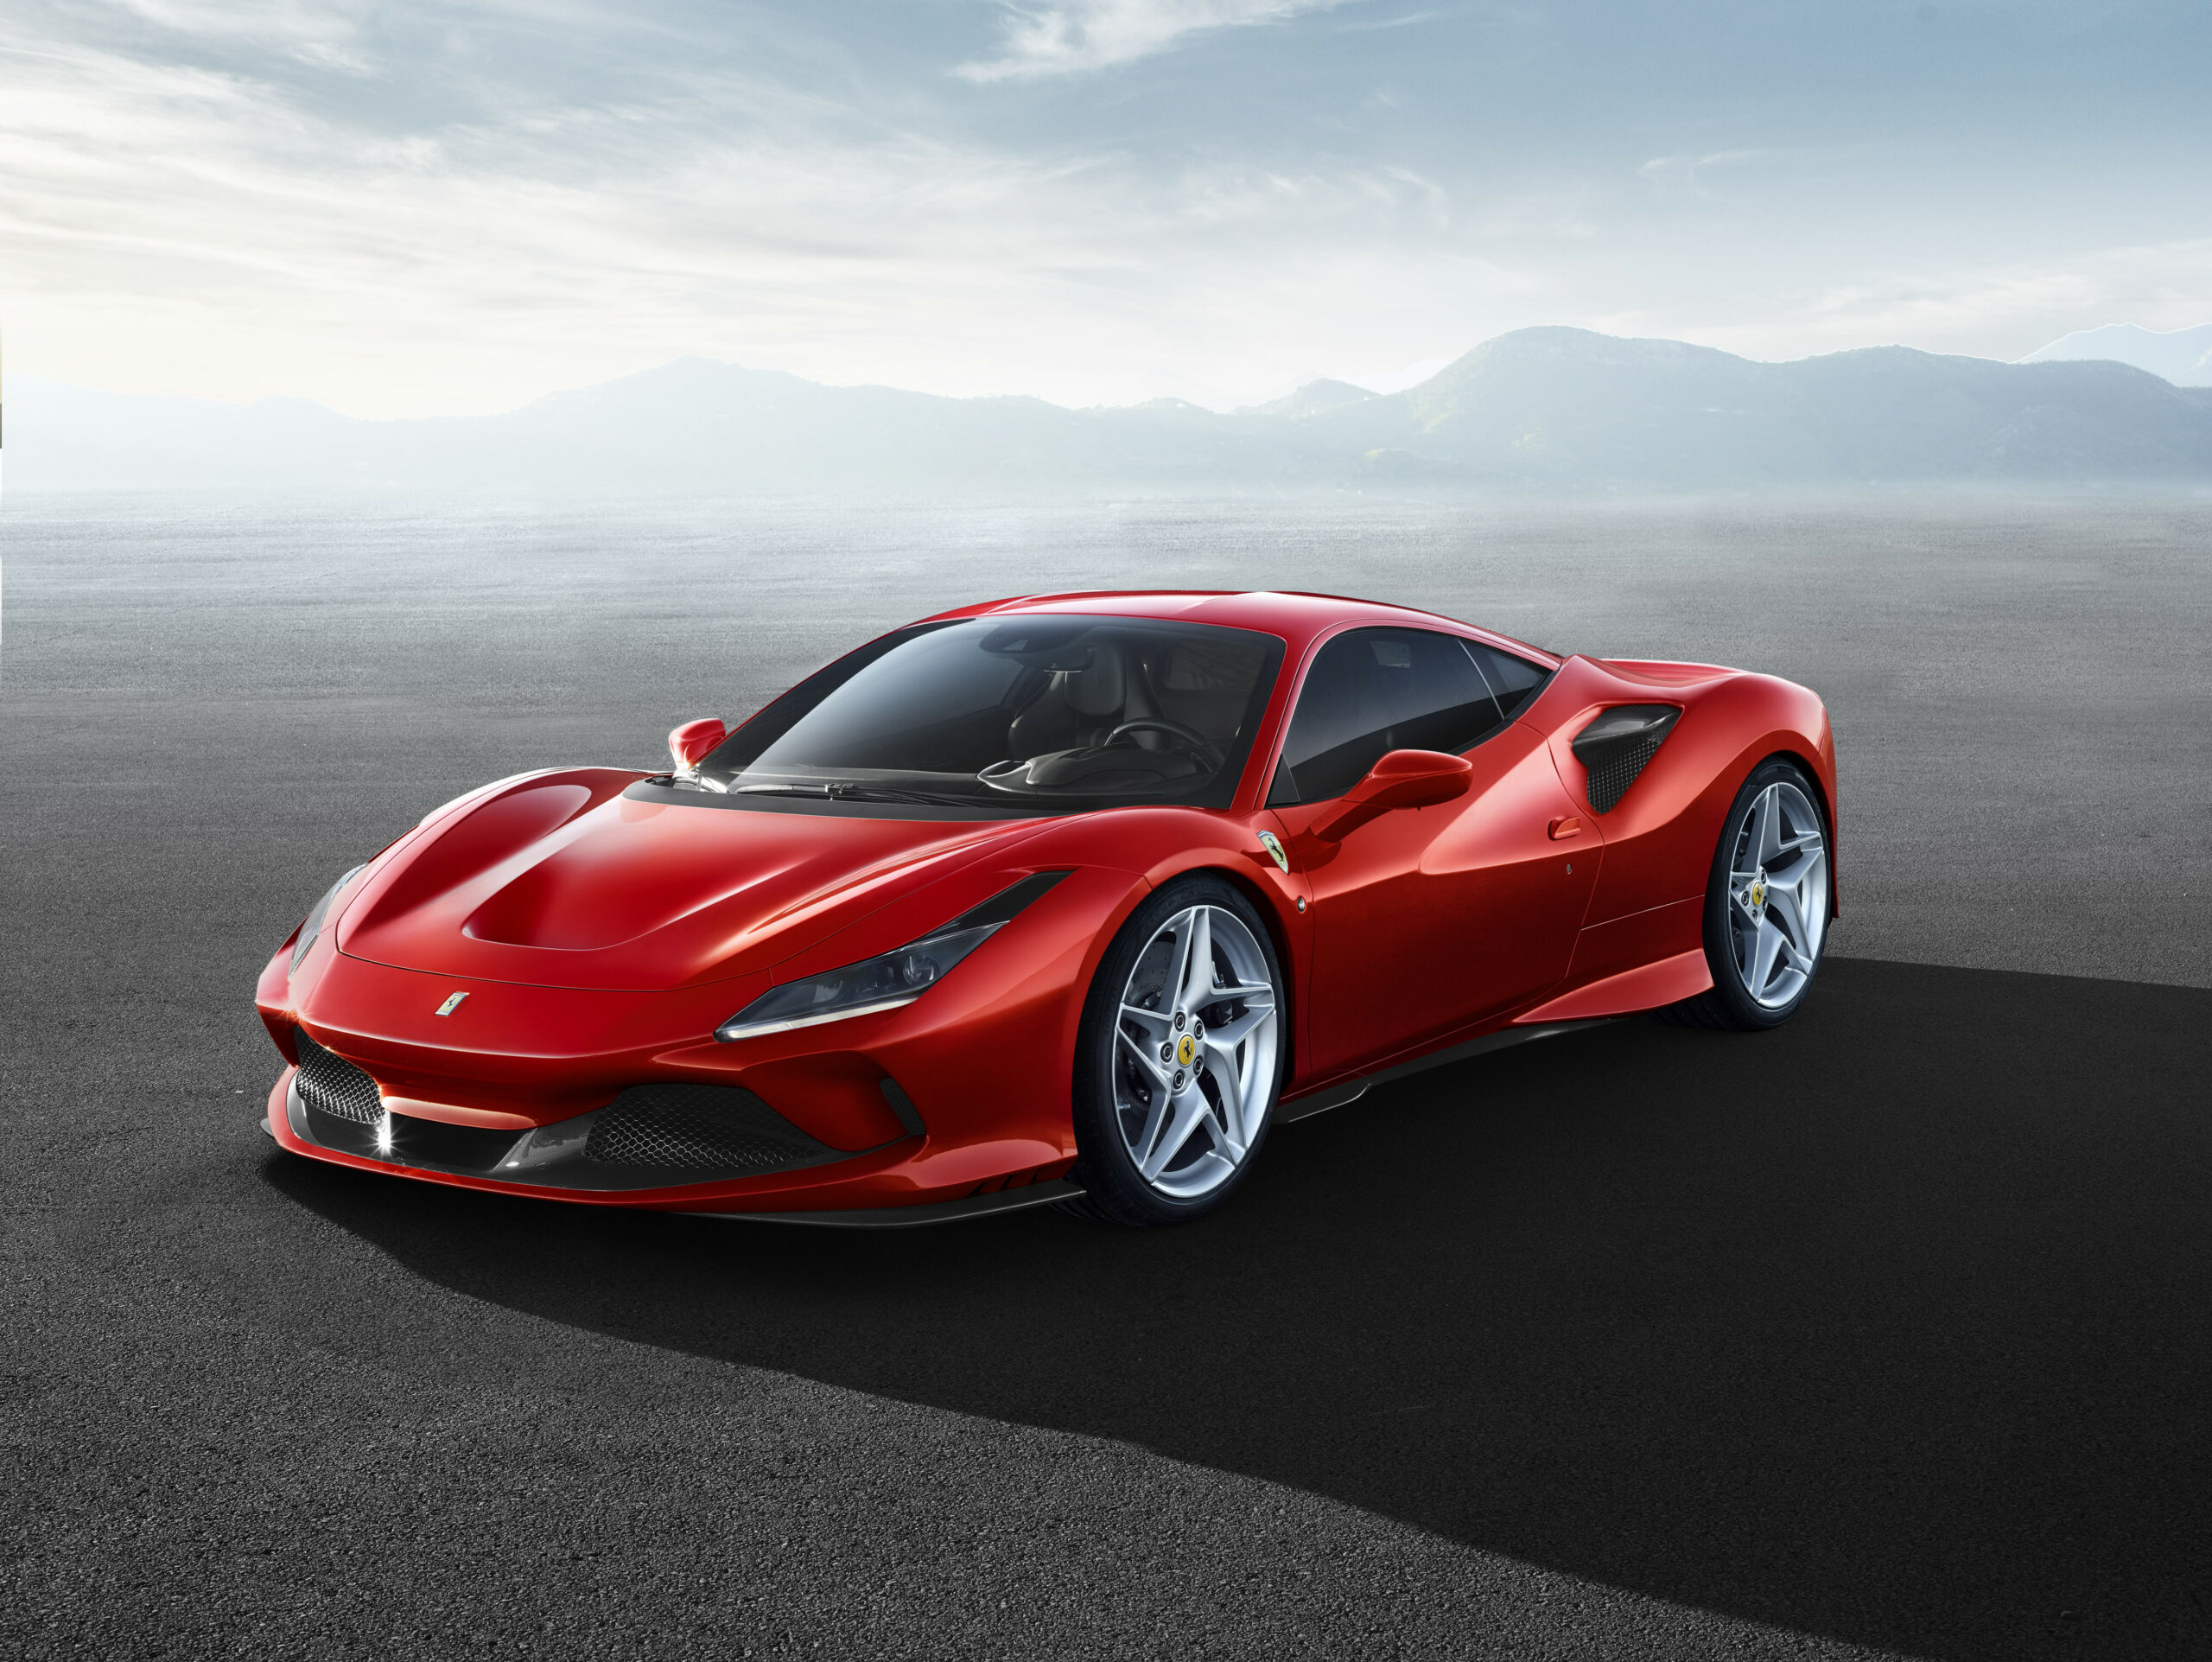 8 Ferrari F8 Tributo Review and Specs